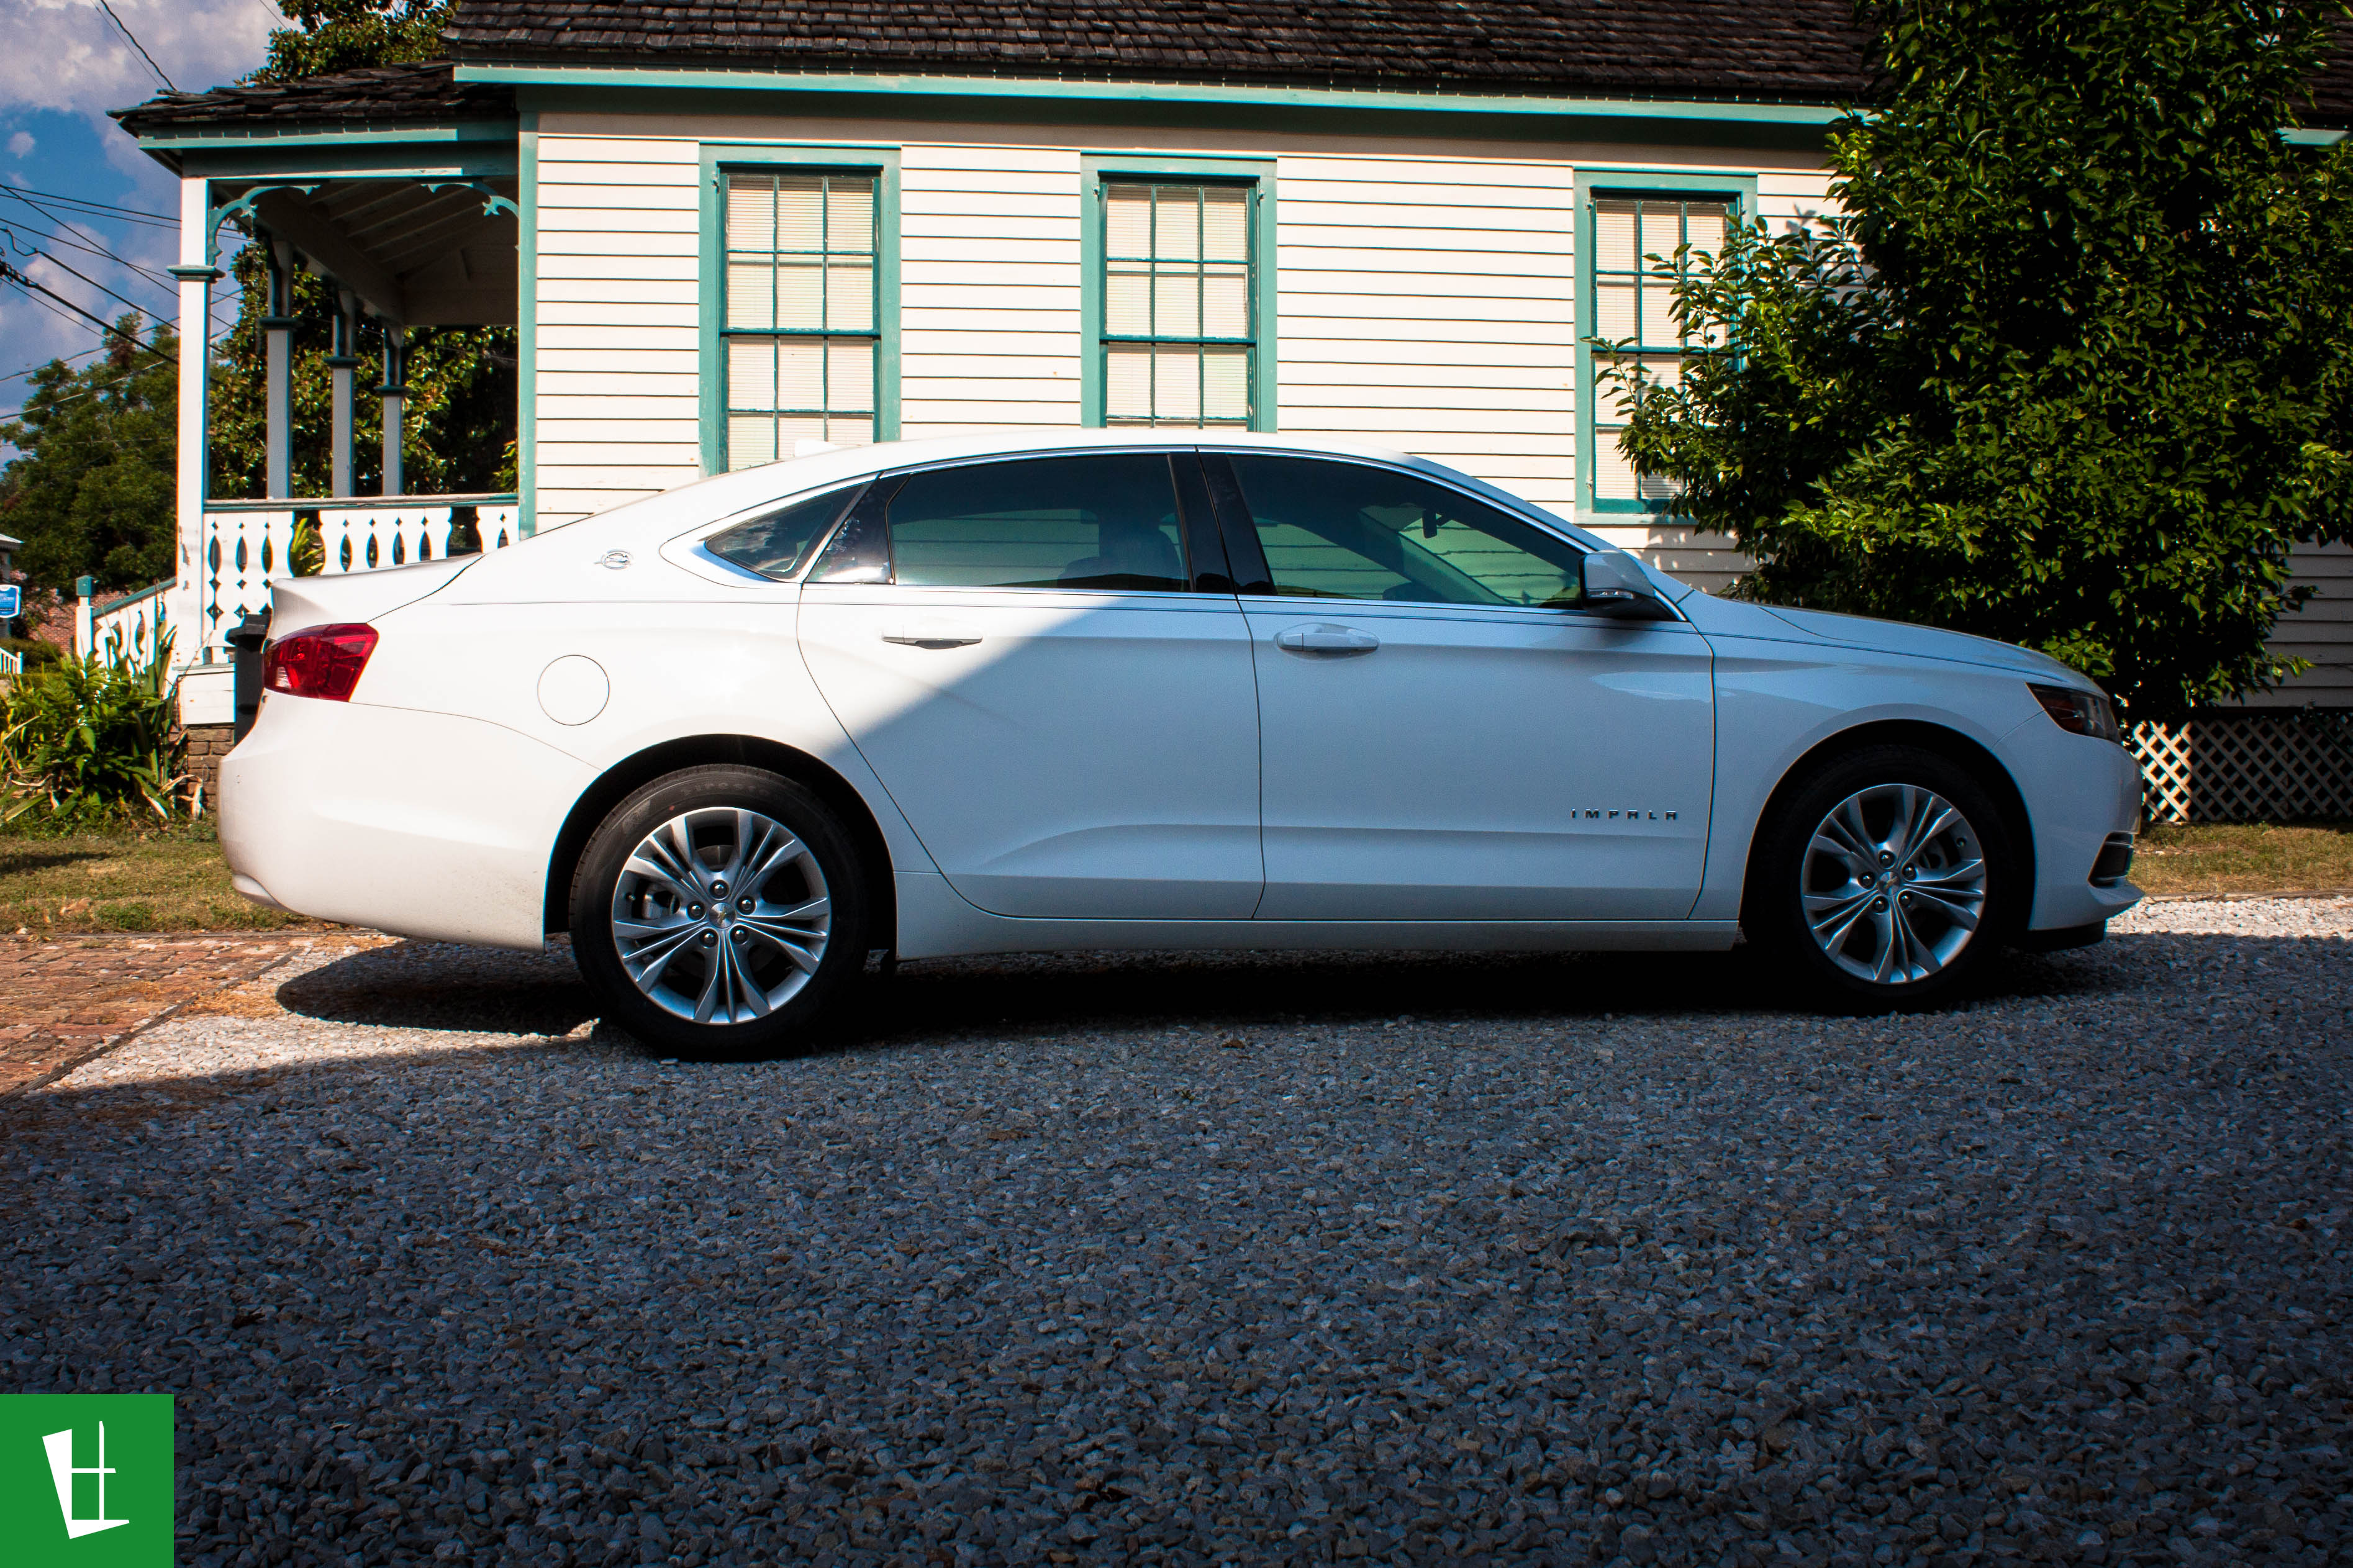 Glass Wrap 2014 Chevrolet Impala Window Tinting